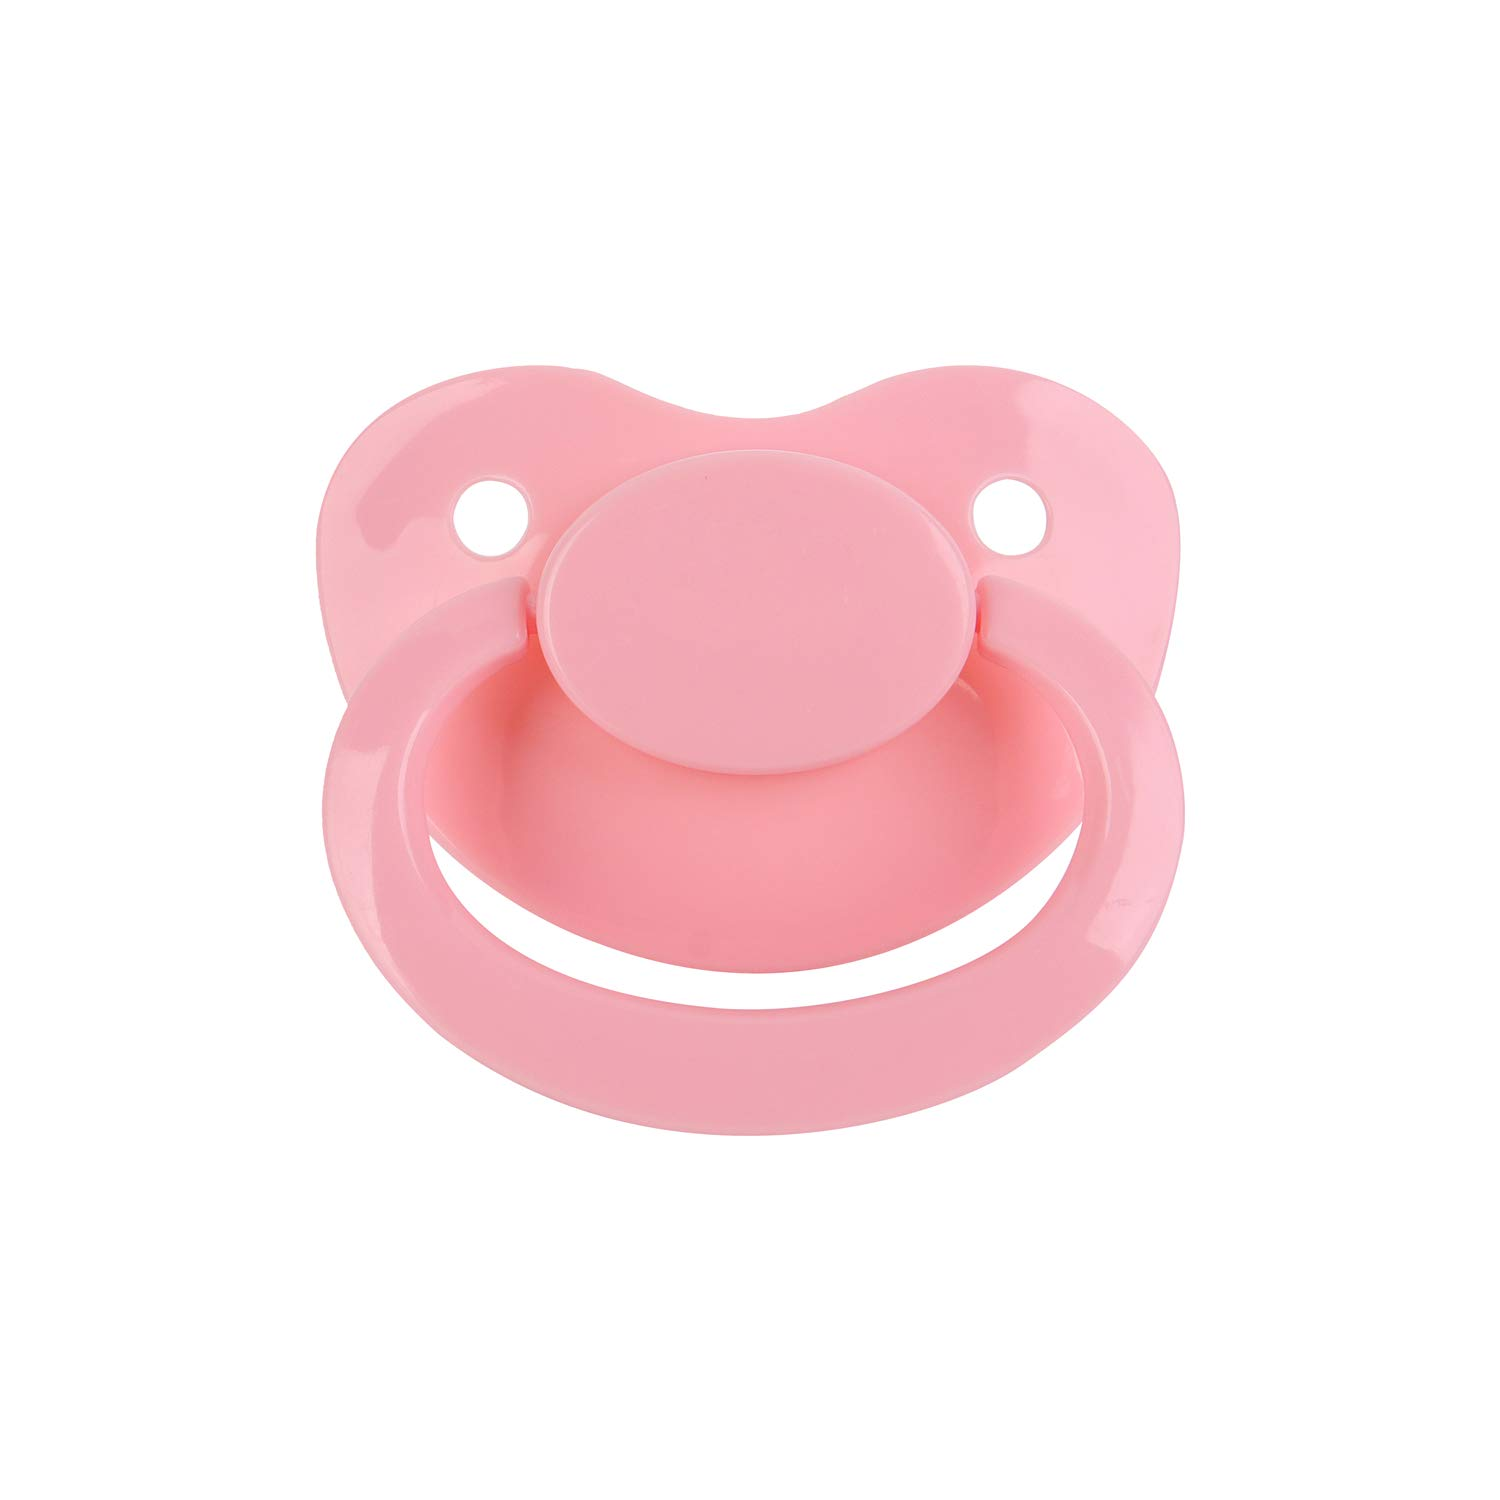 TEN@NIGHT Adult Baby Pacifier Size Dummy ABDL Pacifier Adult Silicone Nipple